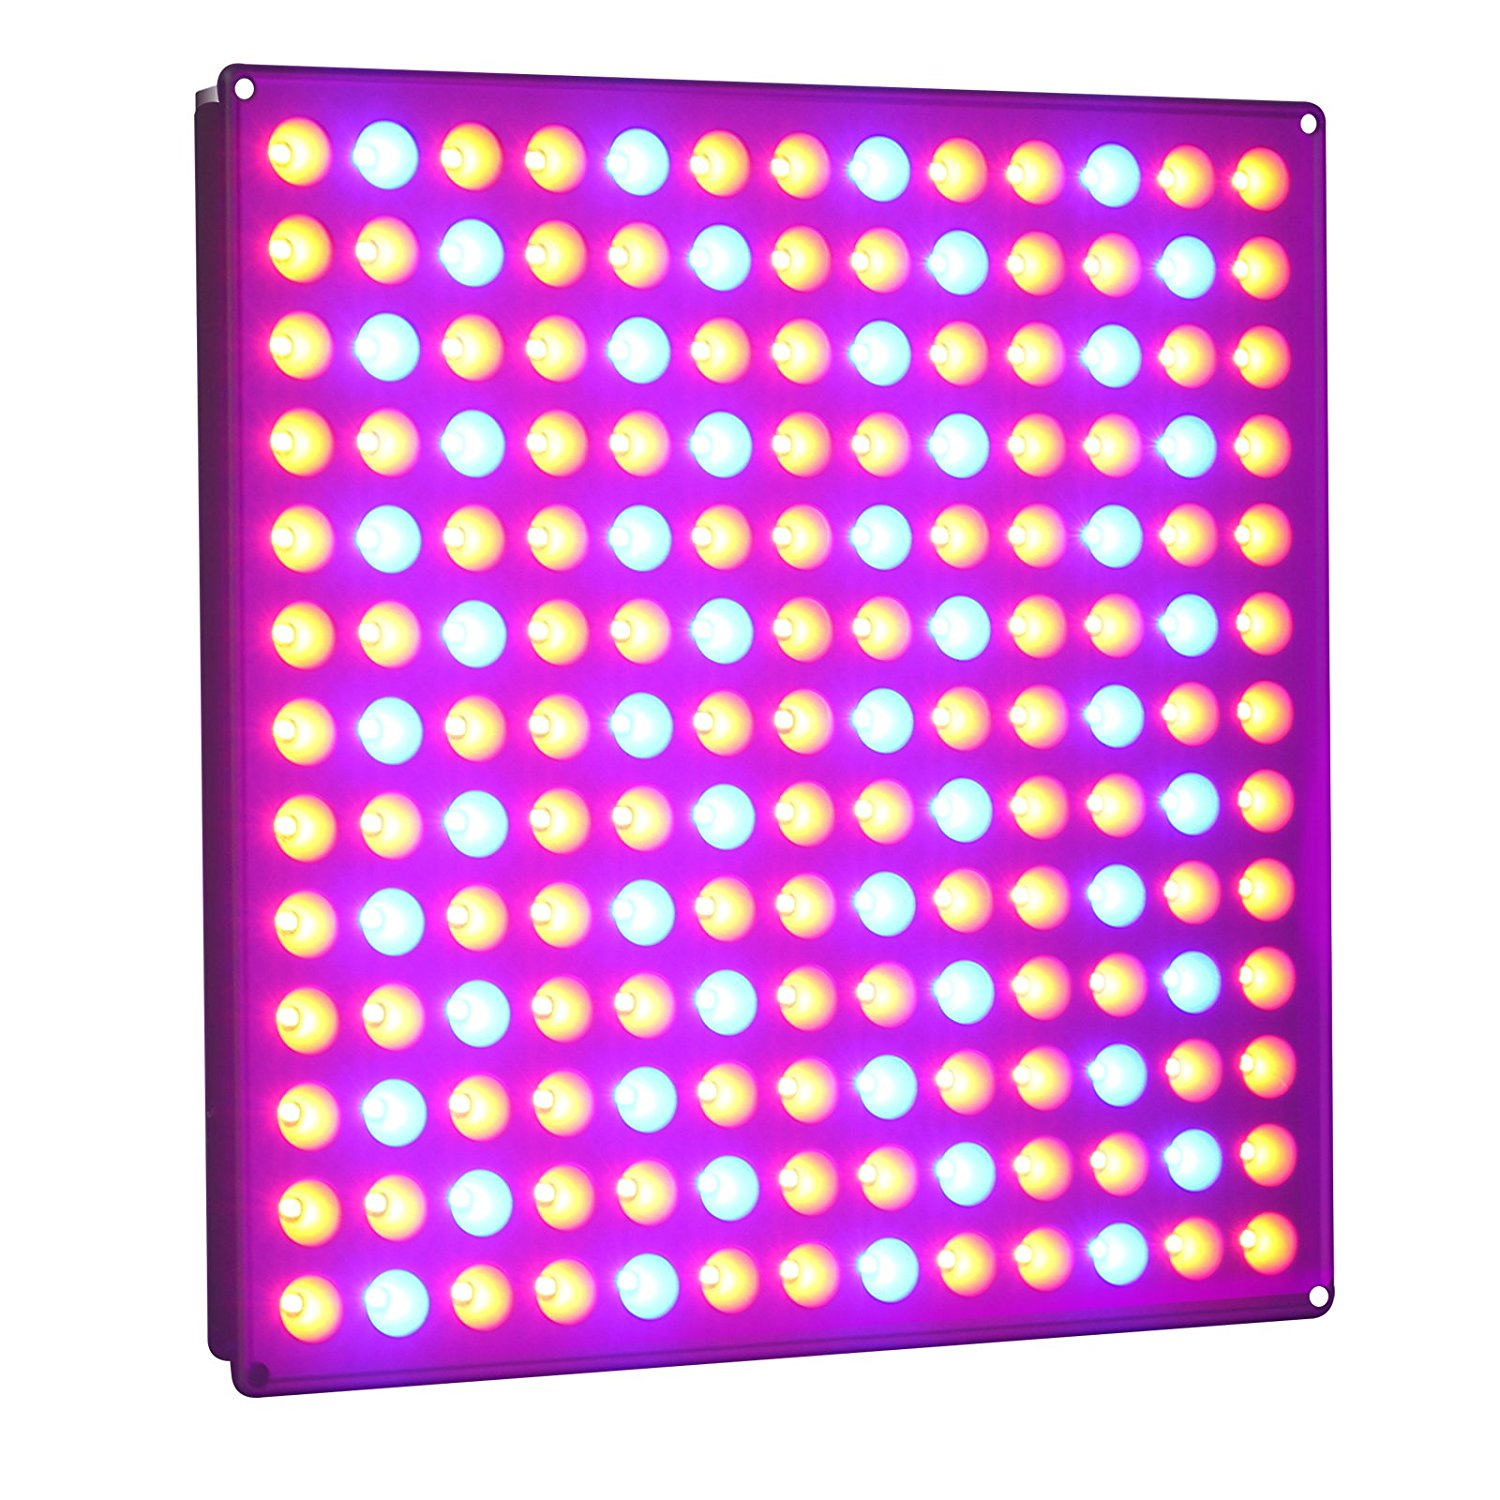 New!!!45W led grow light panel with Red Blue spectrum for Hydroponics greenhouse indoor grow tent plant seeding stock in DE/US(China (Mainland))